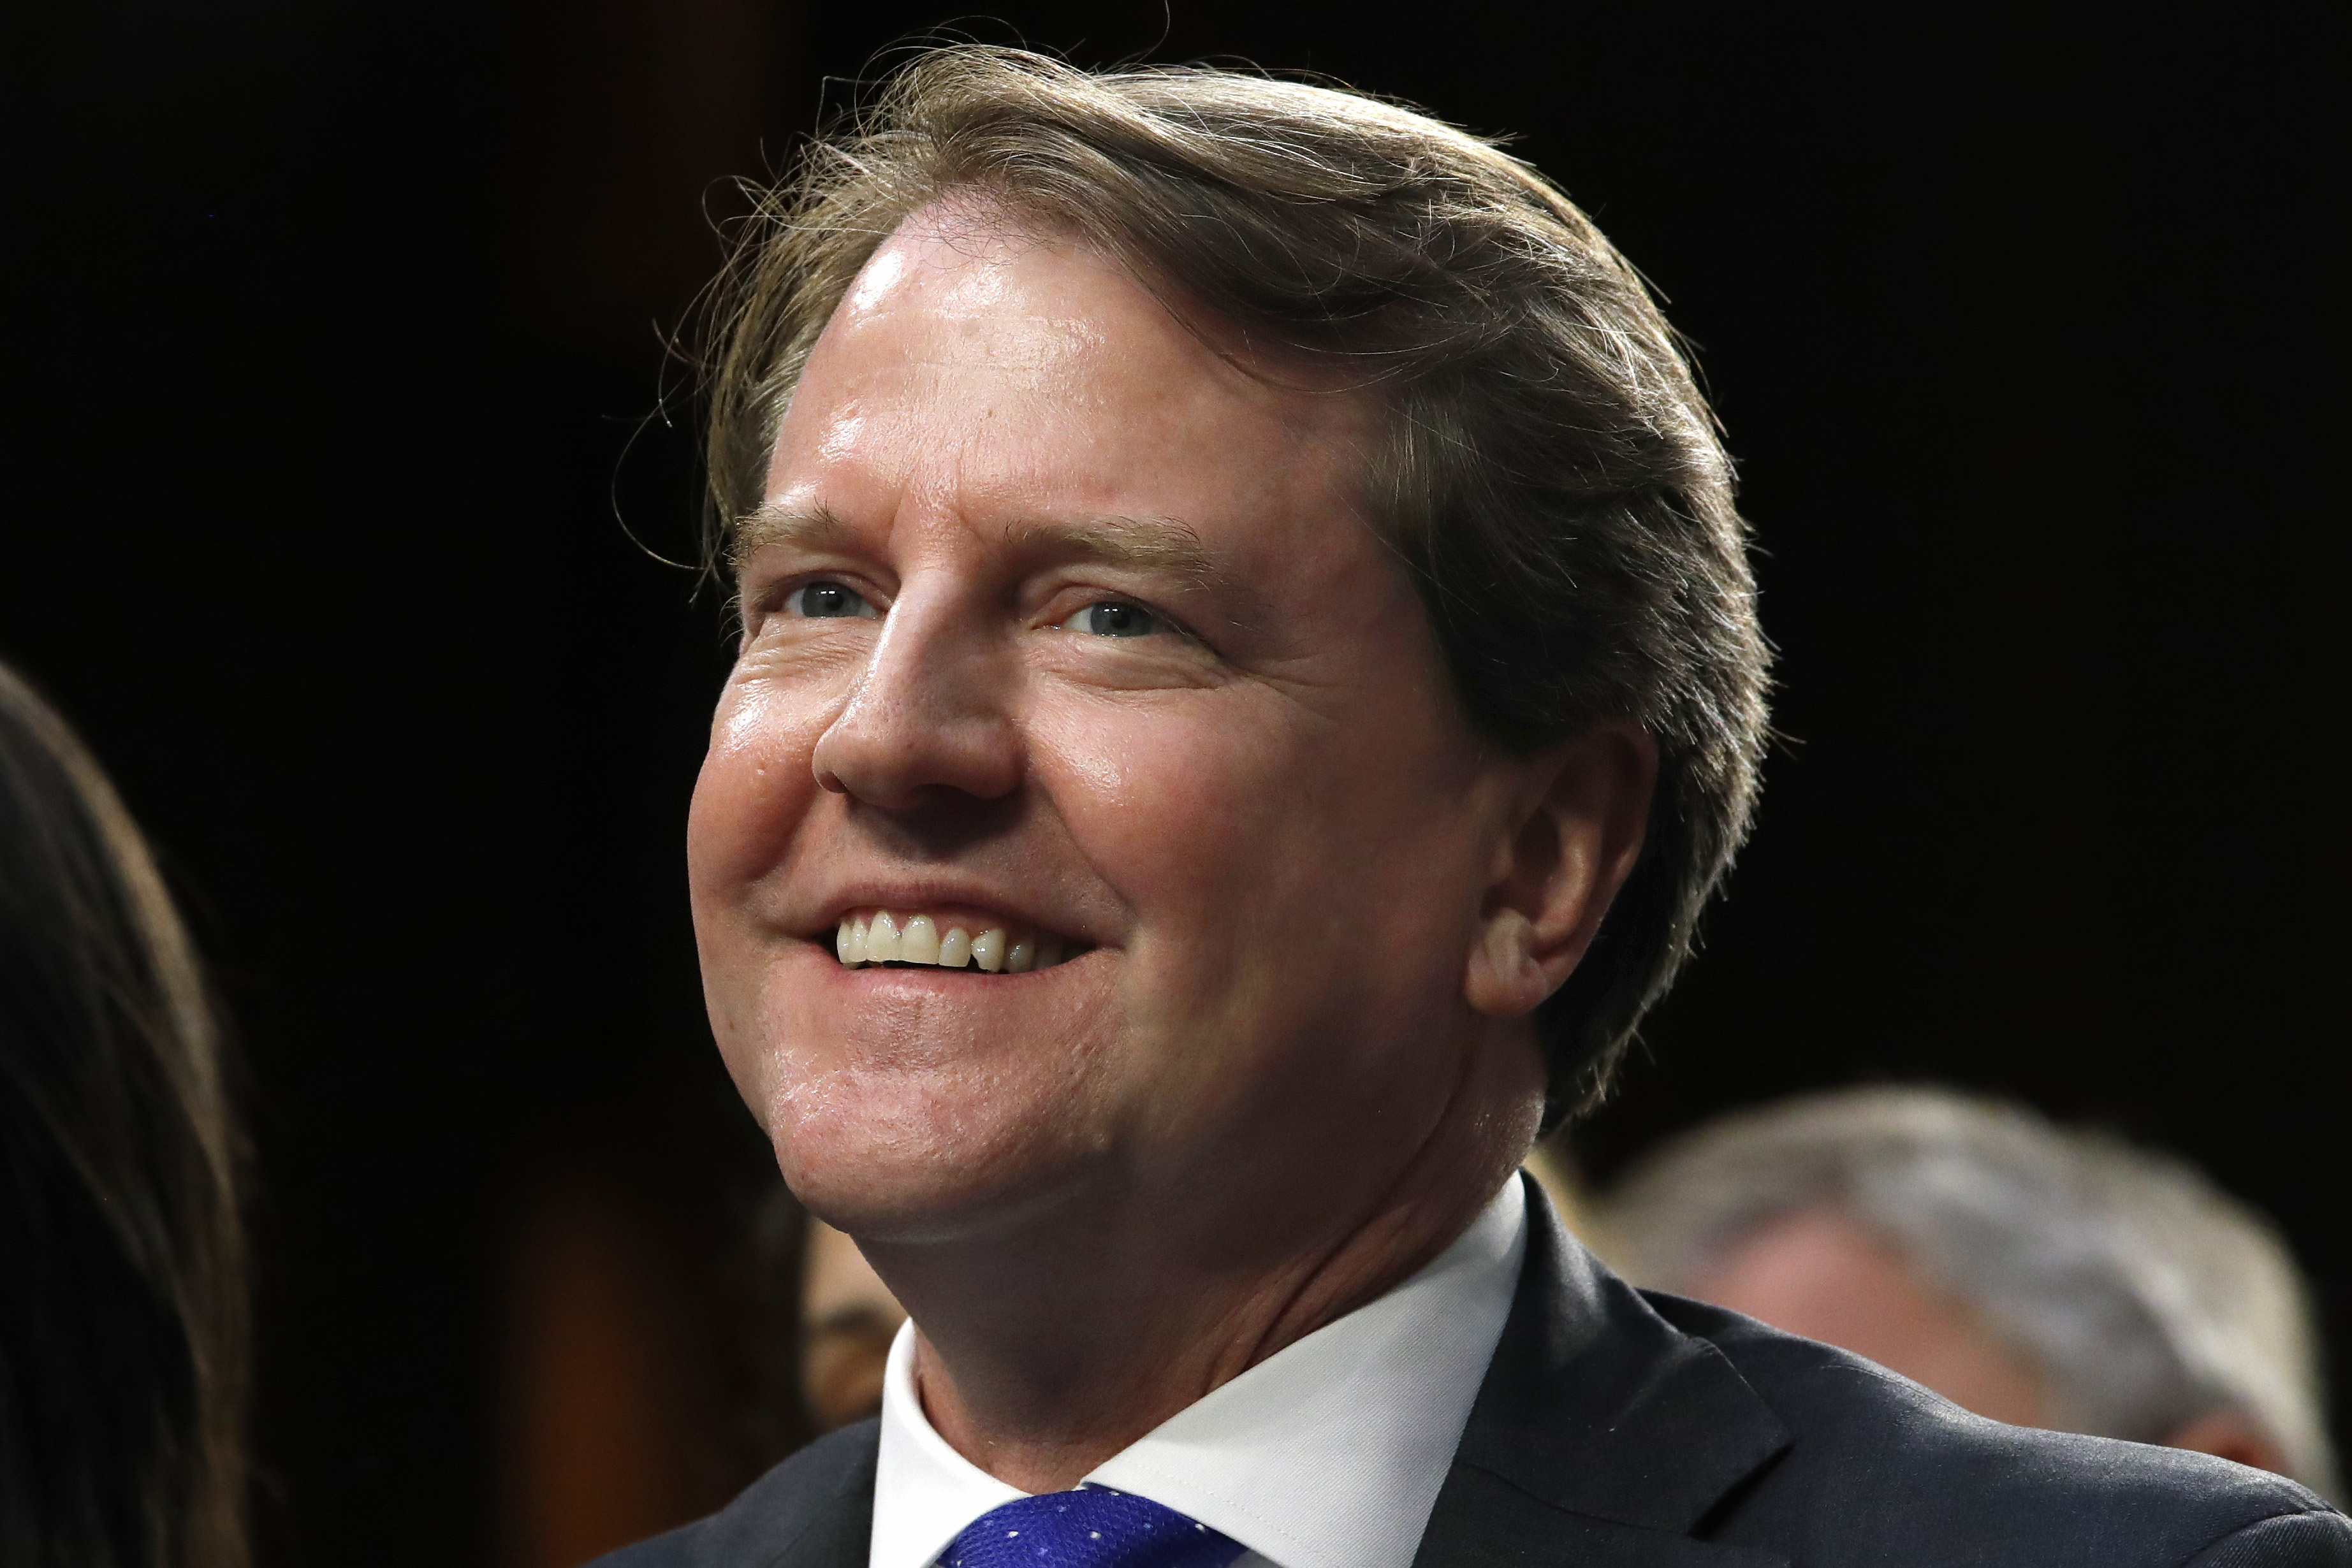 Don McGahn departed as the White House counsel in October. Shown at a confirmation hearing for Supreme Court nominee Brett Kavanaugh with the Senate Judiciary Committee on Capitol Hill on Sept. 4, 2018, in Washington, McGahn spearheaded the nomination of both Kavanaugh and Neil Gorsuch, the two newest members of the U.S. Supreme Court. (AP Photo/Jacquelyn Martin)